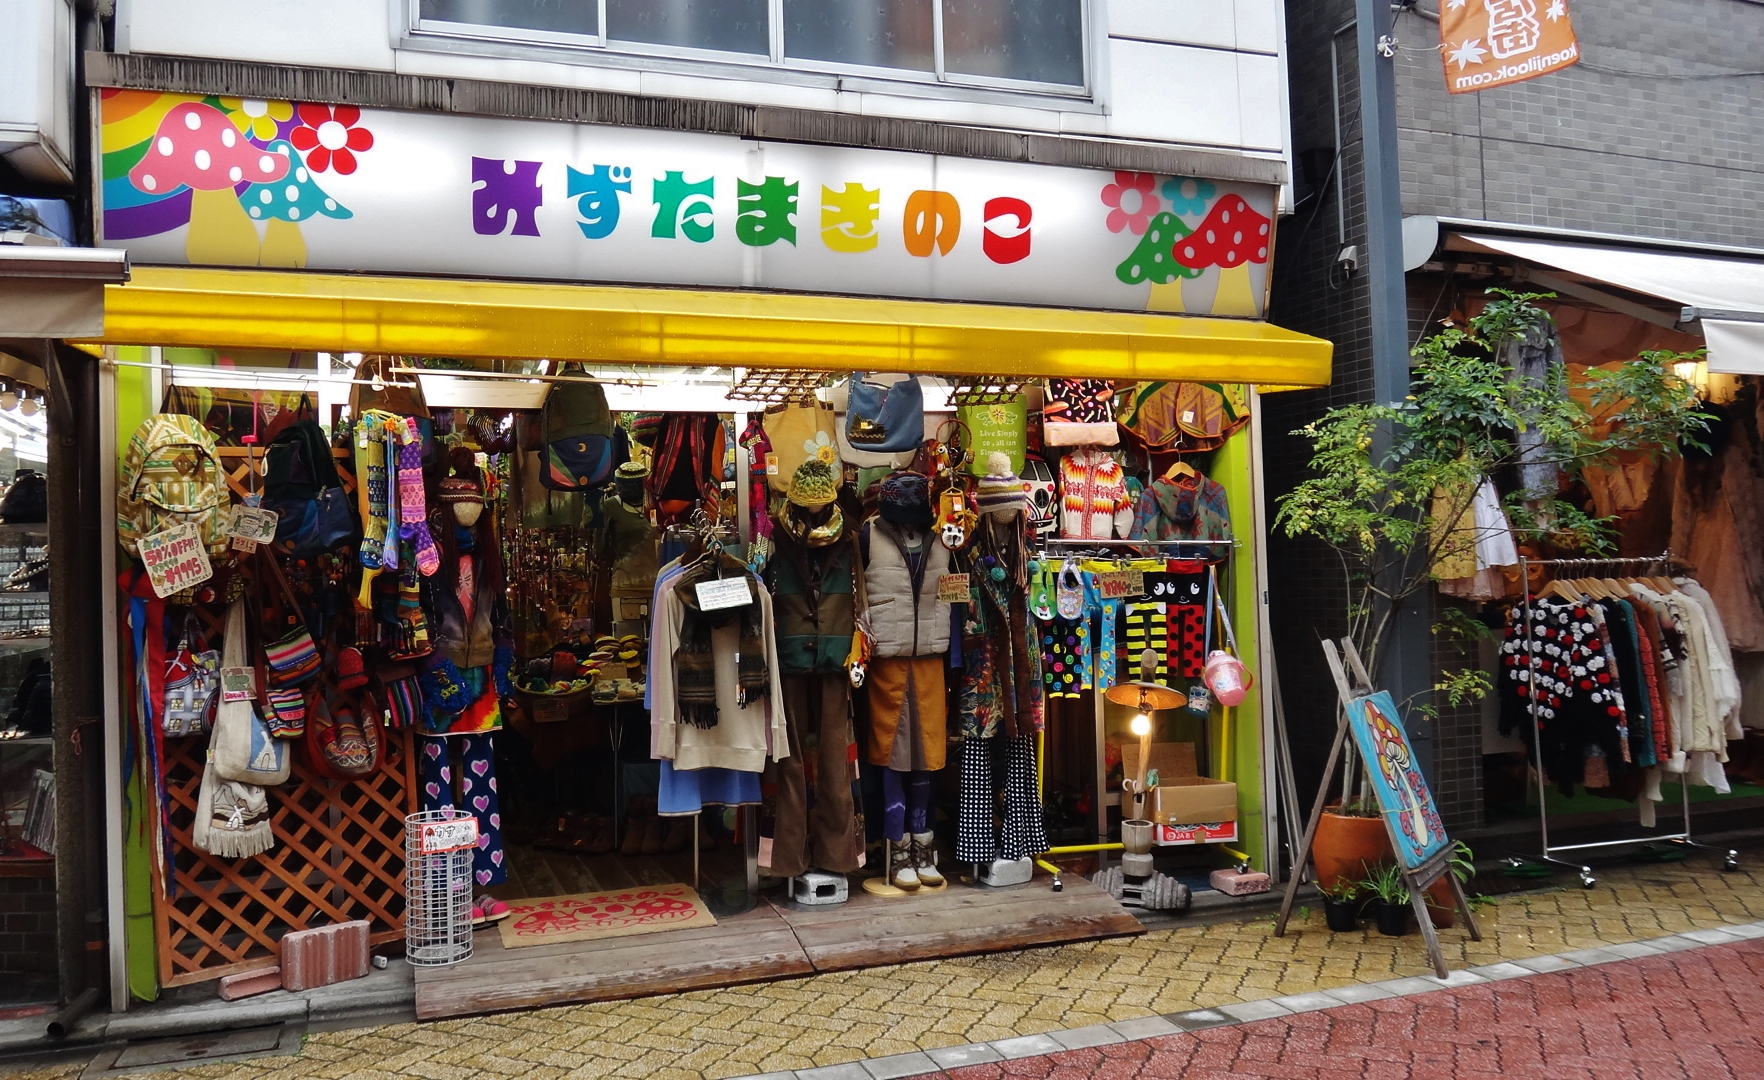 koenji used clothing store the tokyo files 東京ファイル